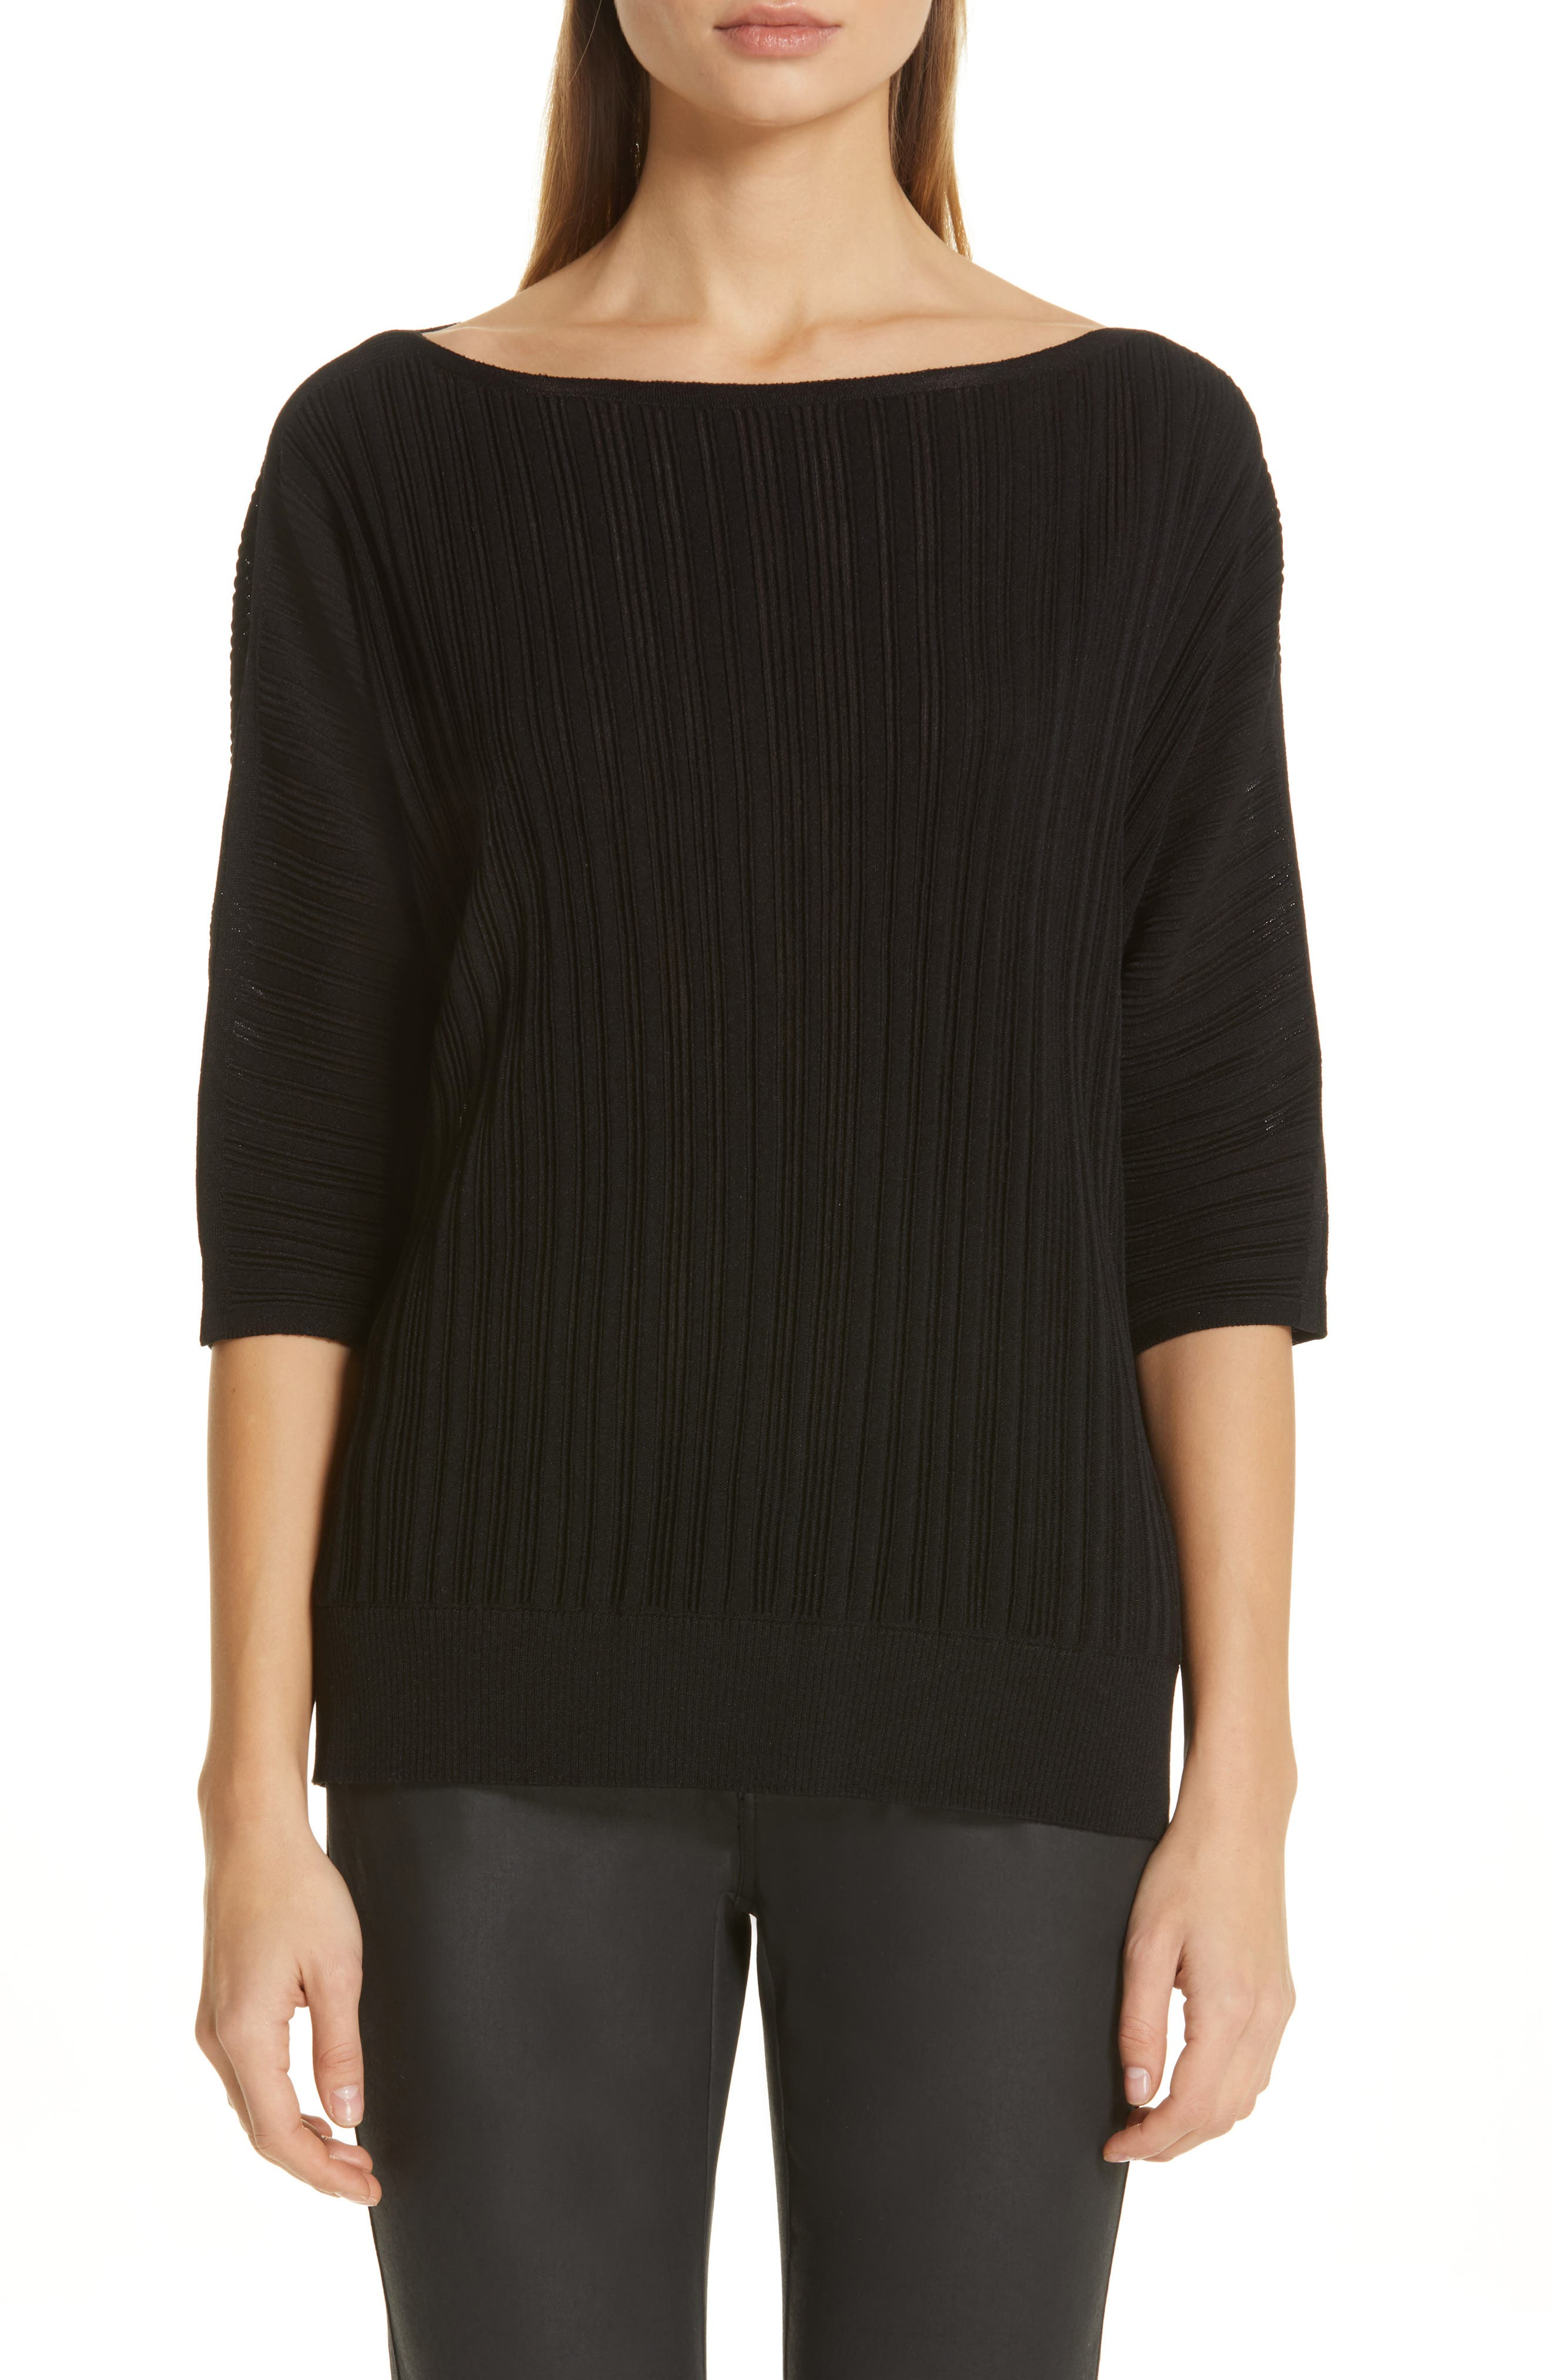 LAFAYETTE 148 NEW YORK Plissé Ribbed Dolman Sweater, Main, color, BLACK